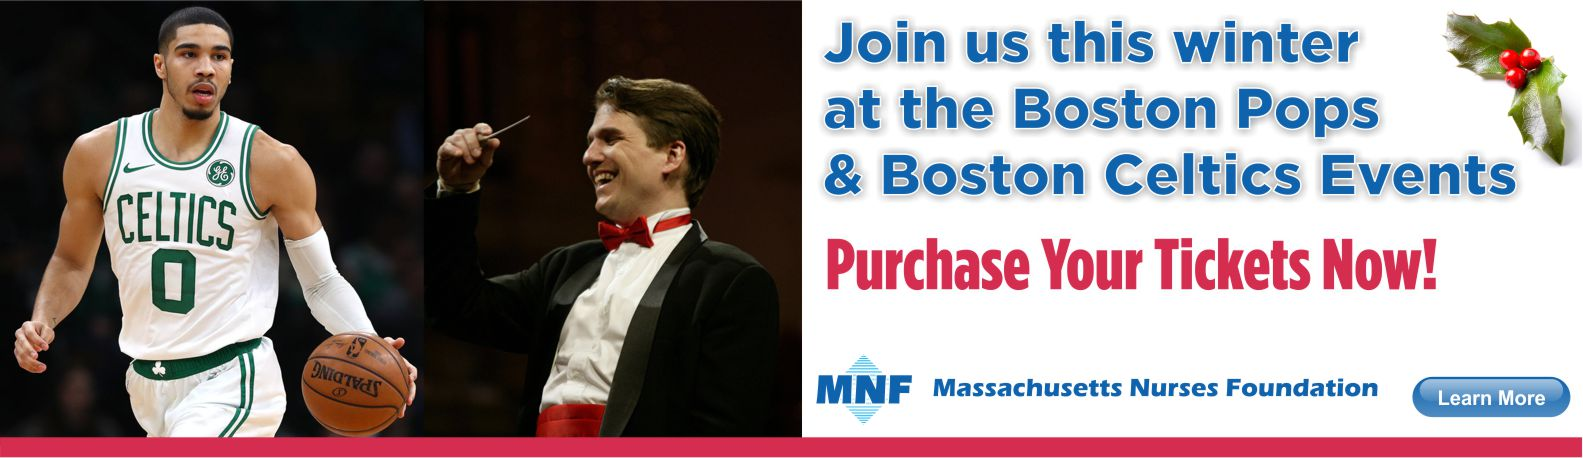 Join us this winter at the Boston Pops and Boston Celtics Events